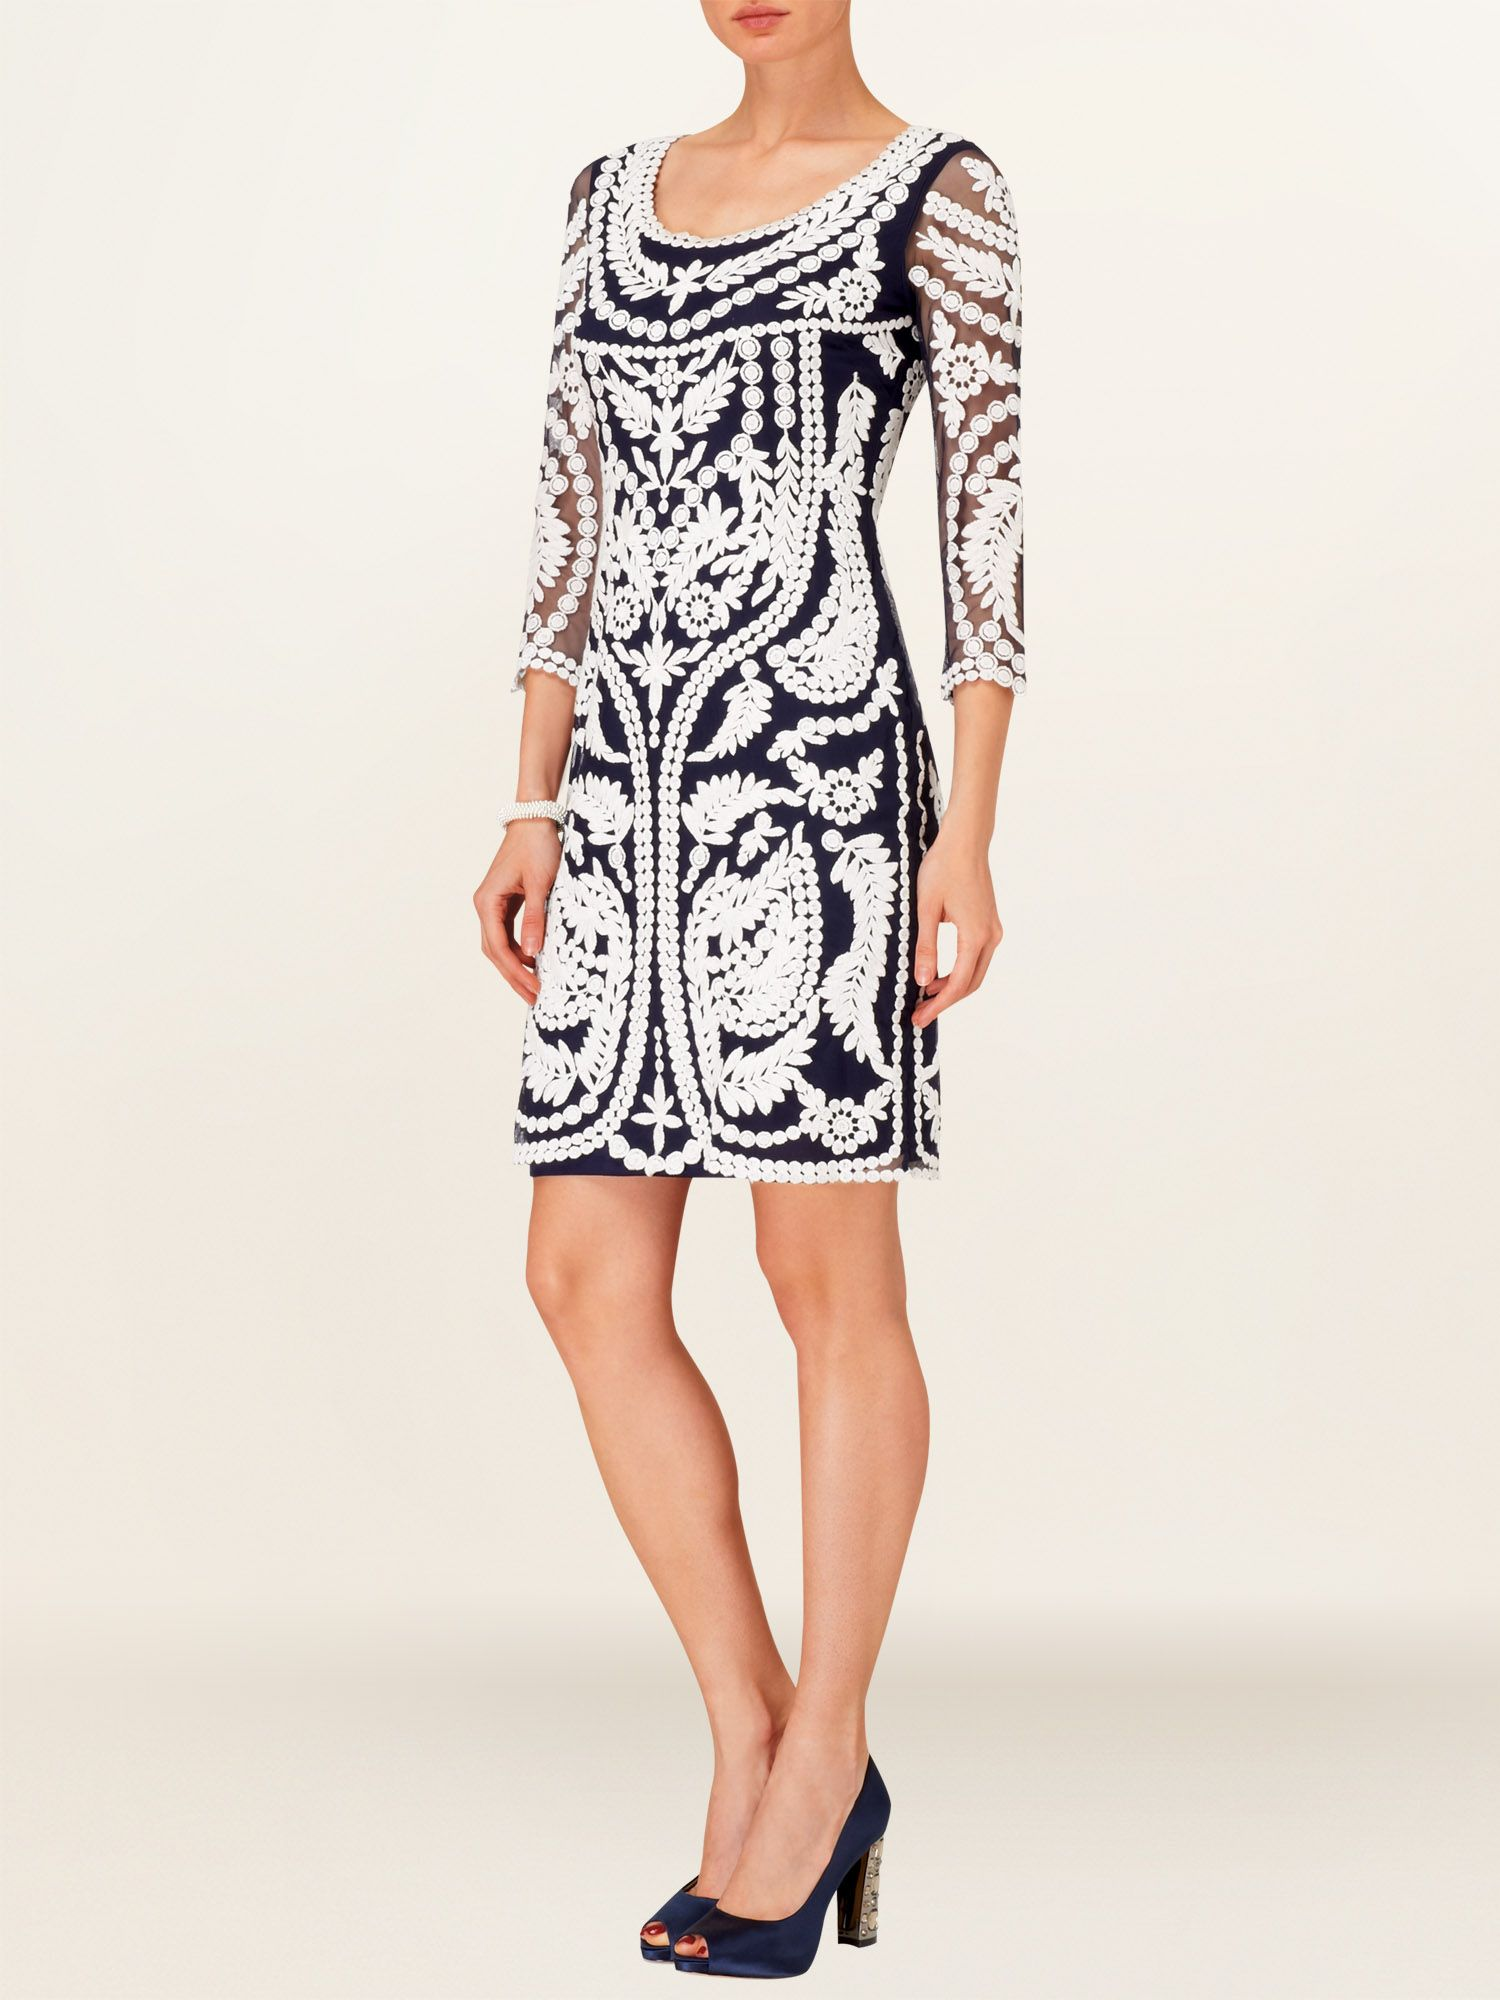 Willamina embroidered dress